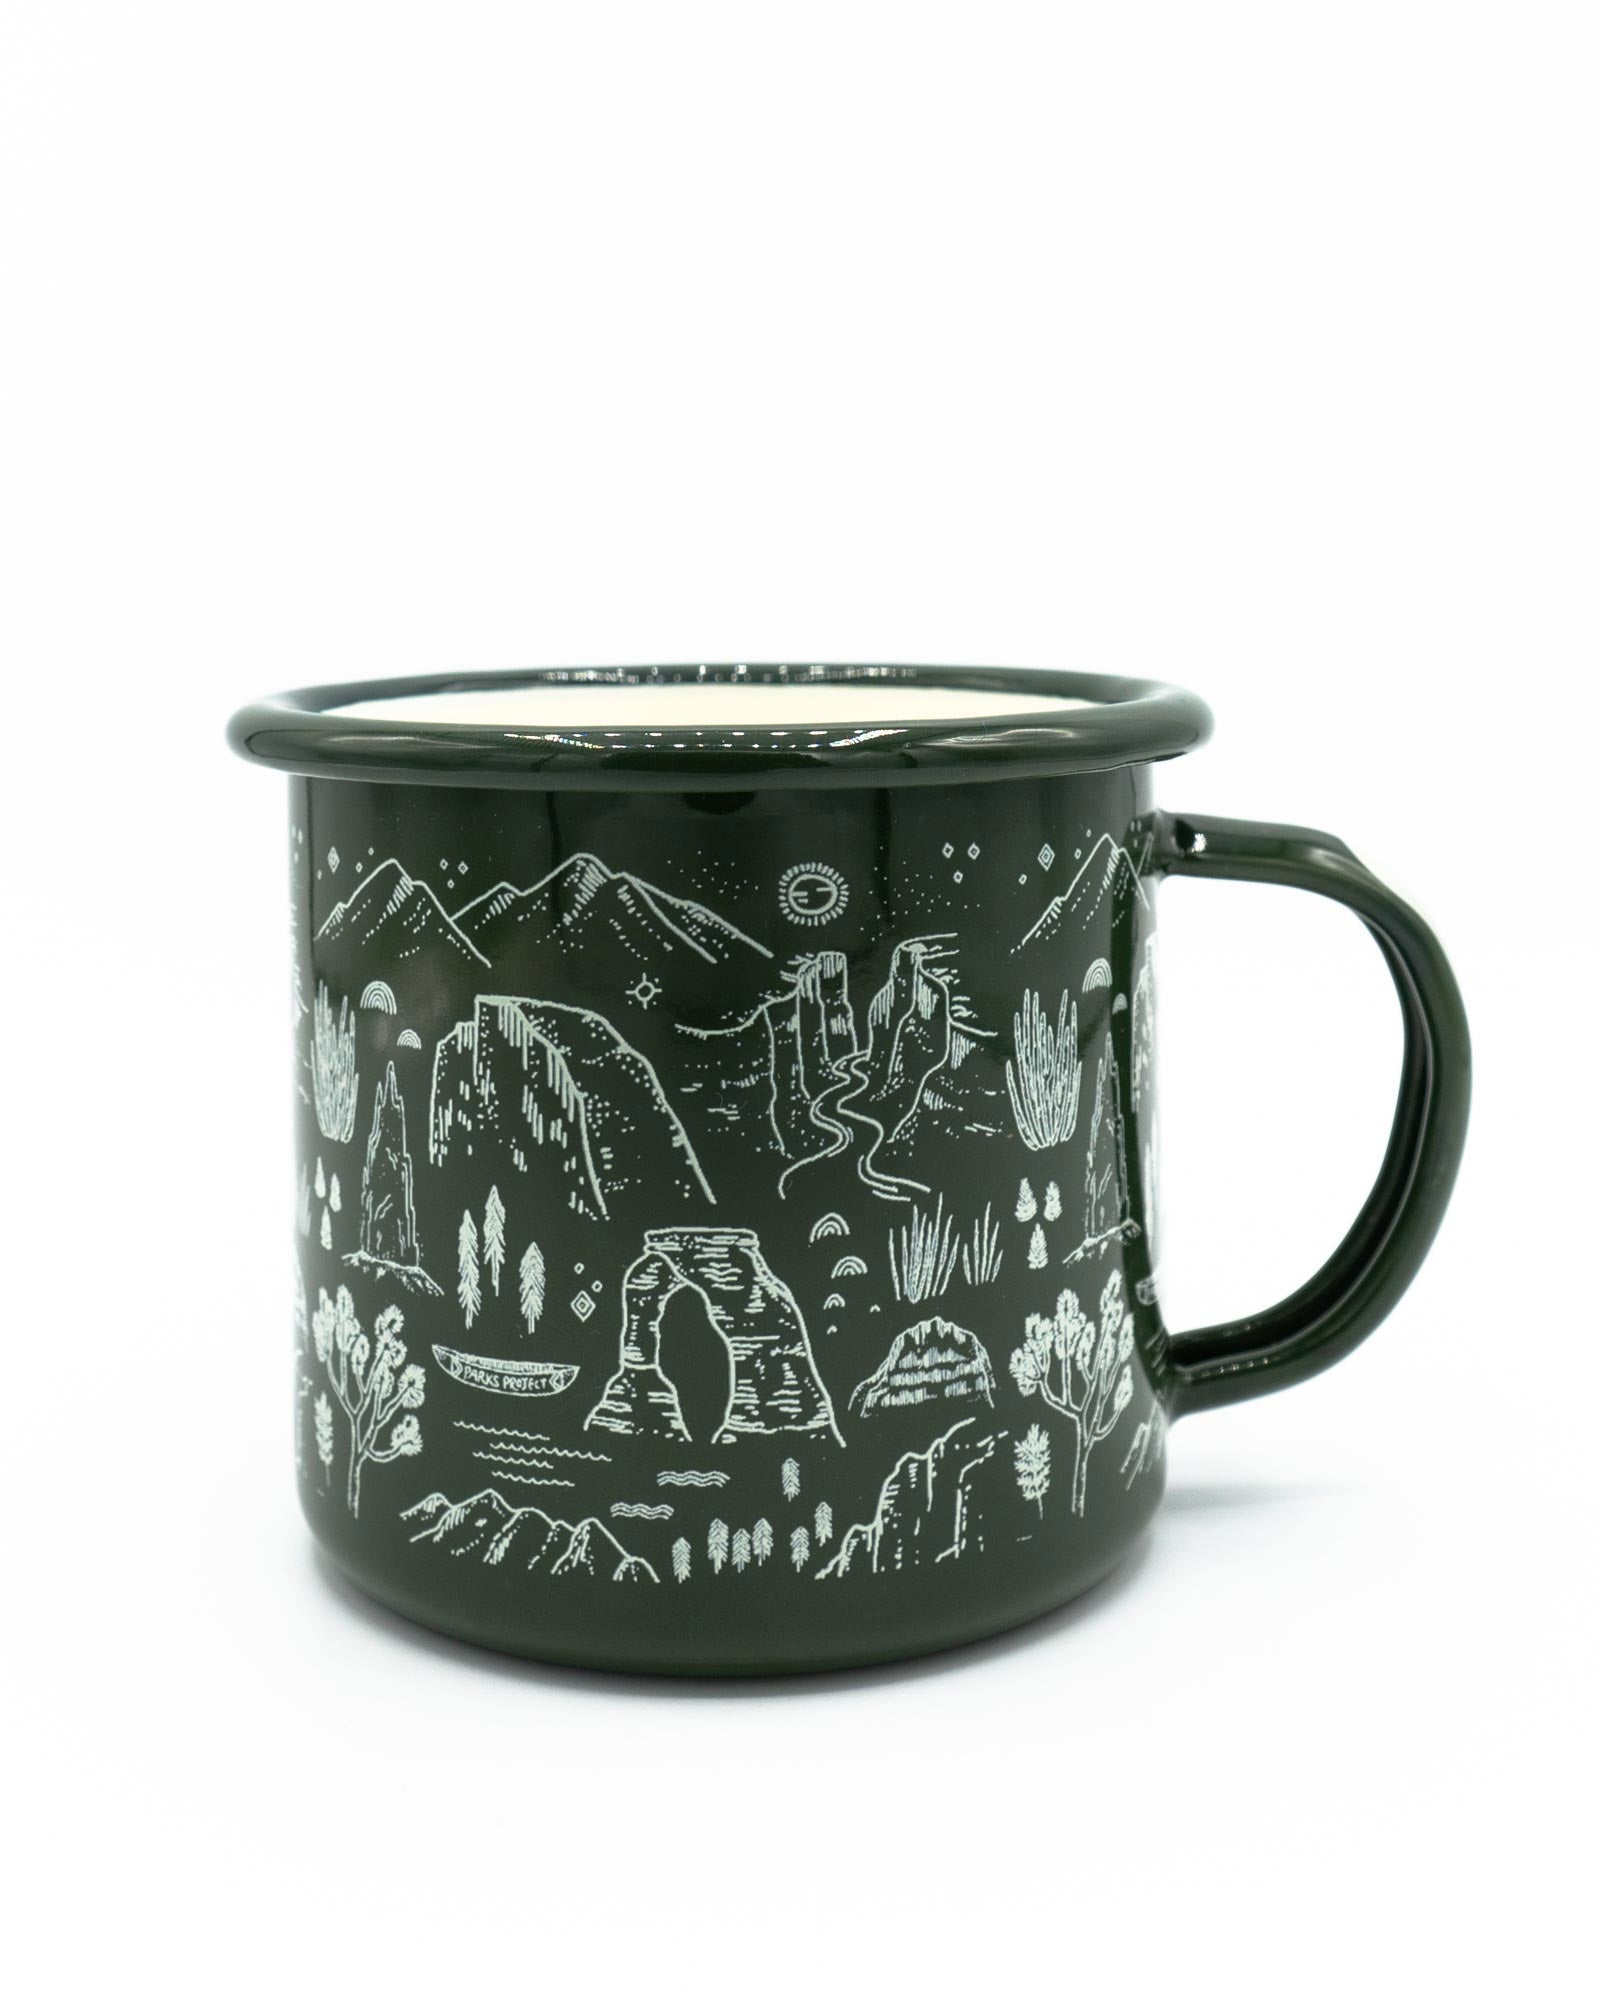 National Parks Iconic Enamel Mug | Parks Project | National Park Gifts